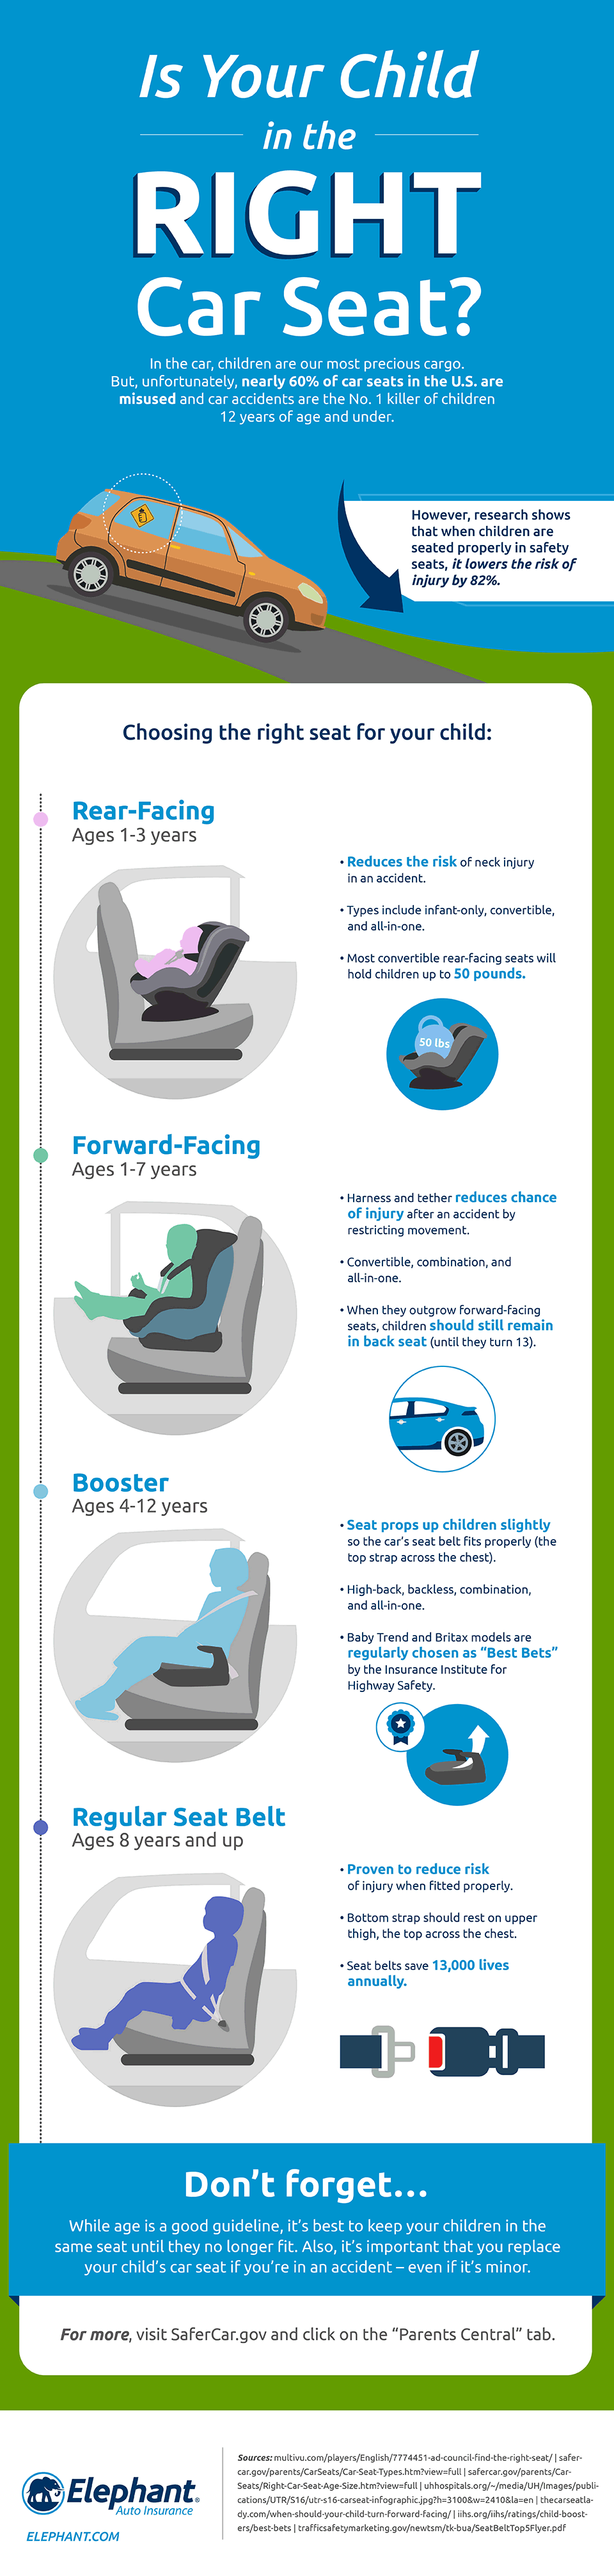 Is your child in the right car seat